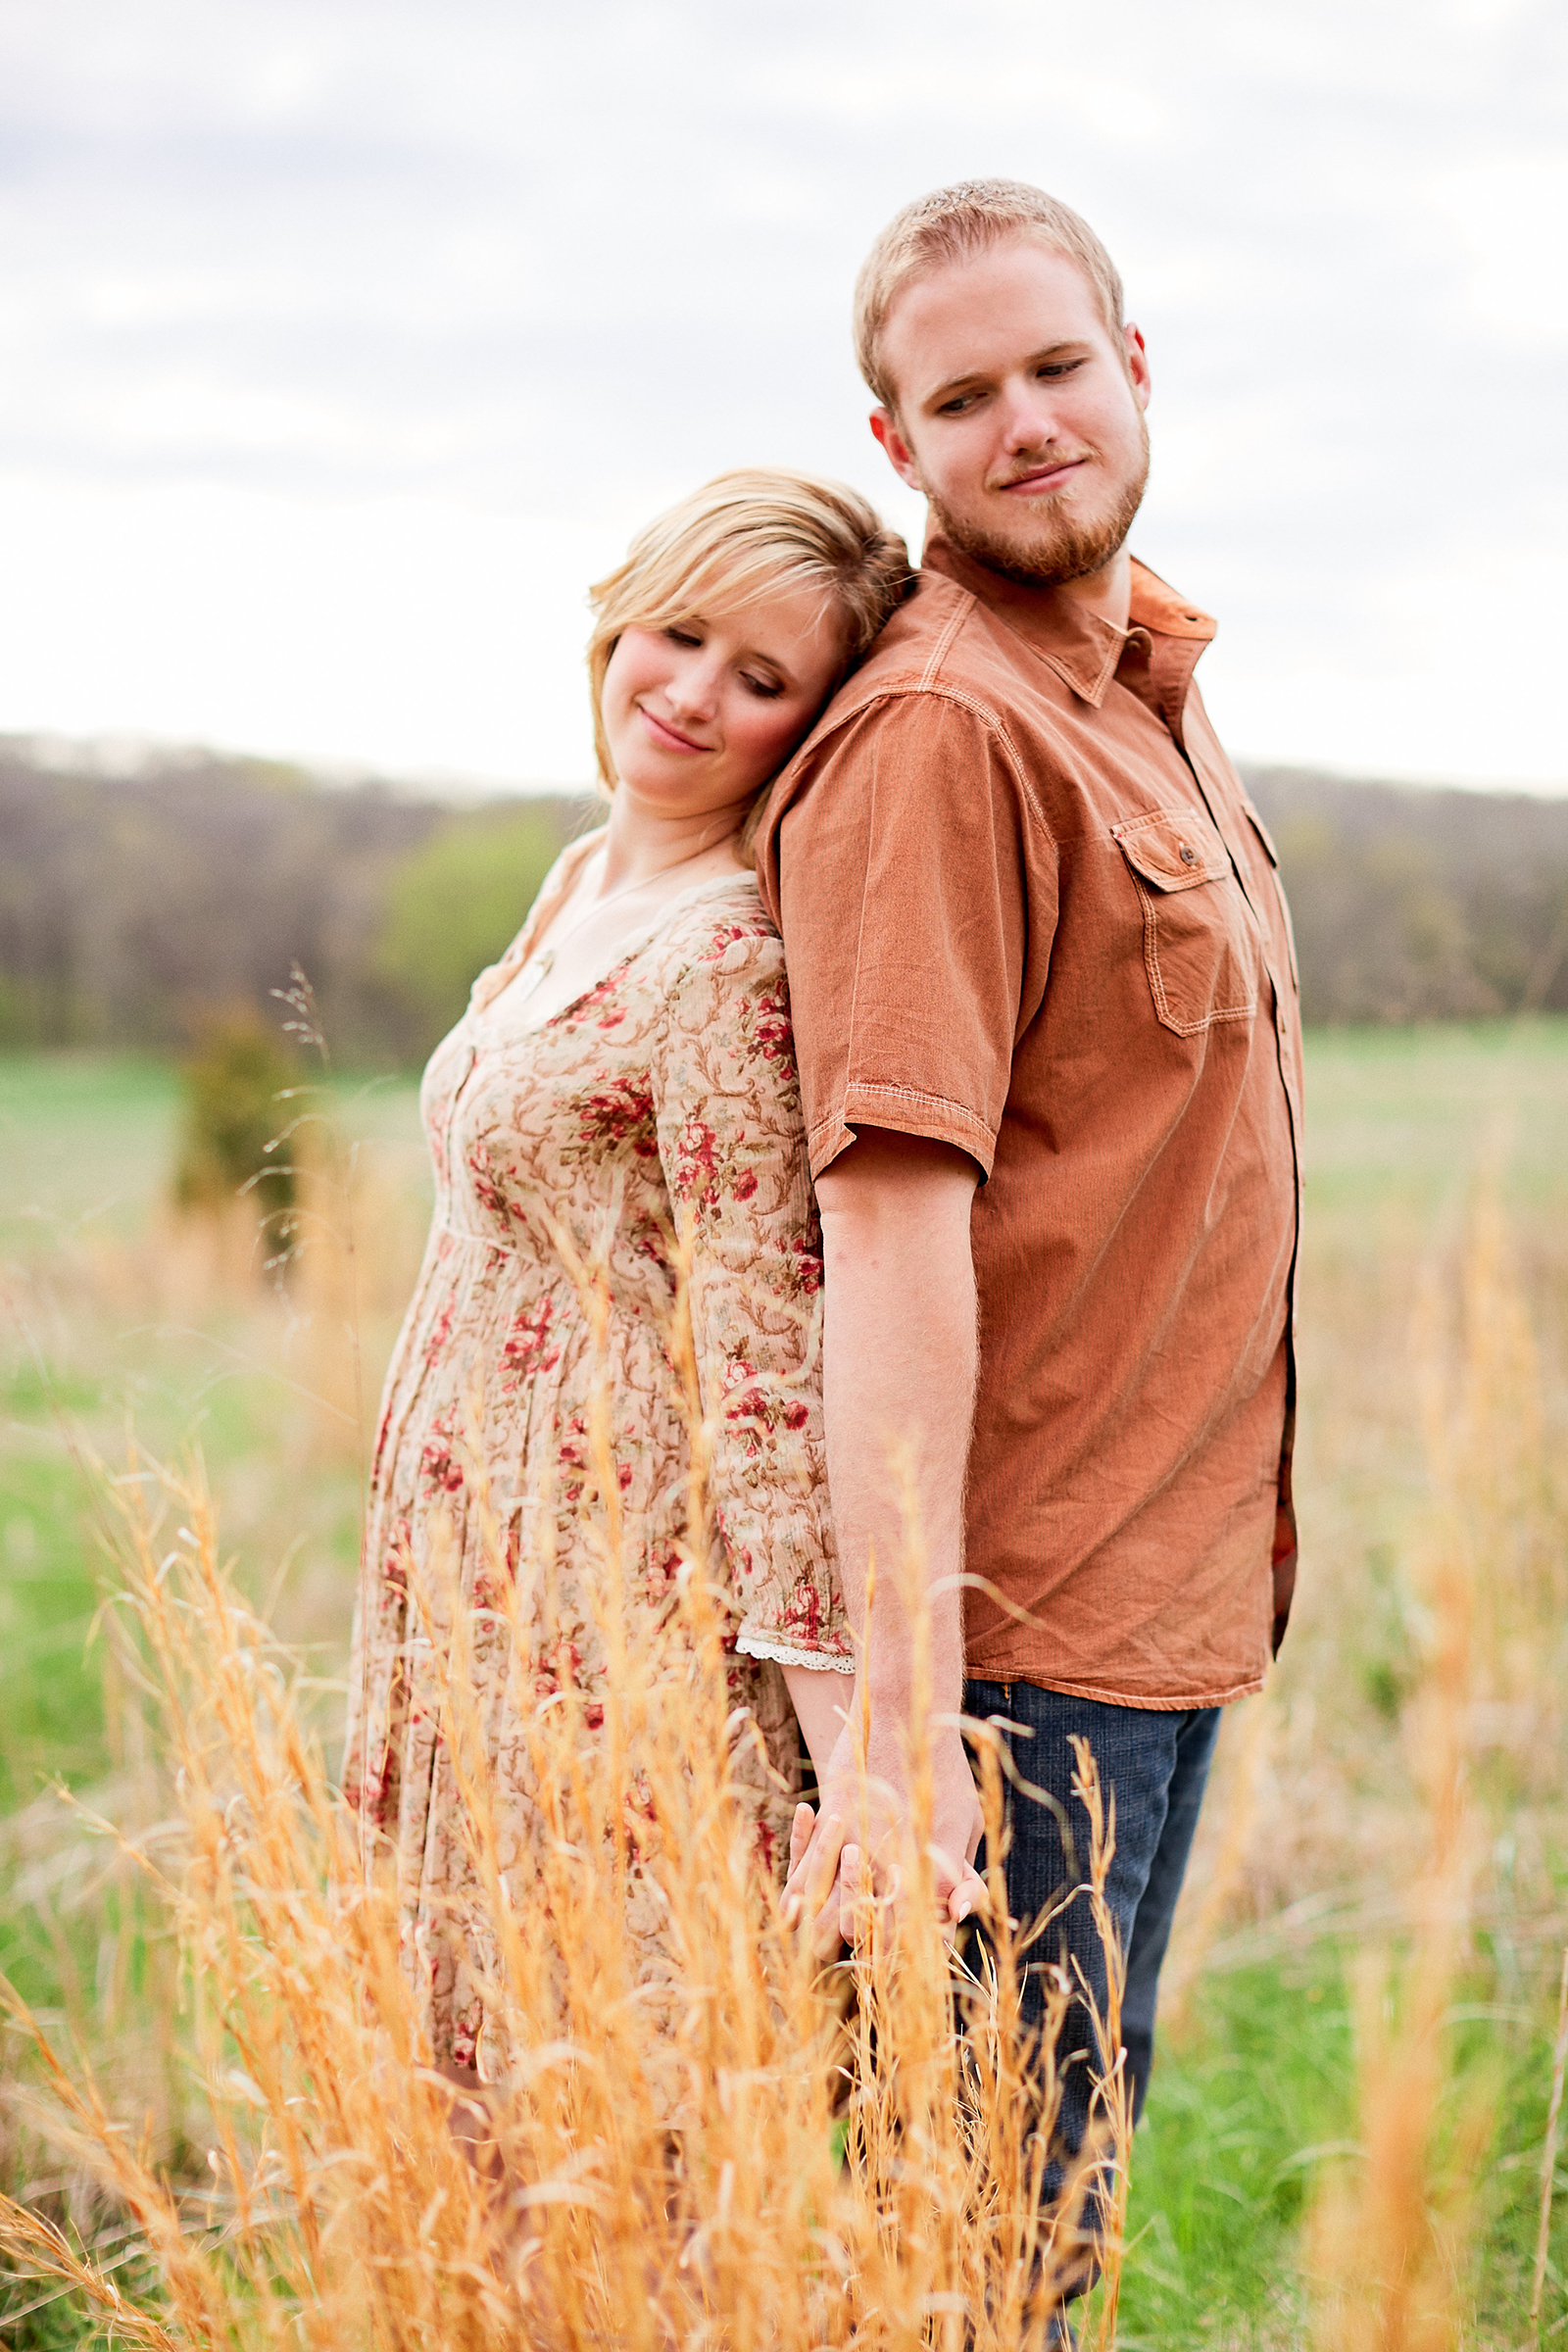 Daniel Boone Home Engagement Session in St Charles County by Oldani Photography St. Louis Wedding Photographers13.jpg